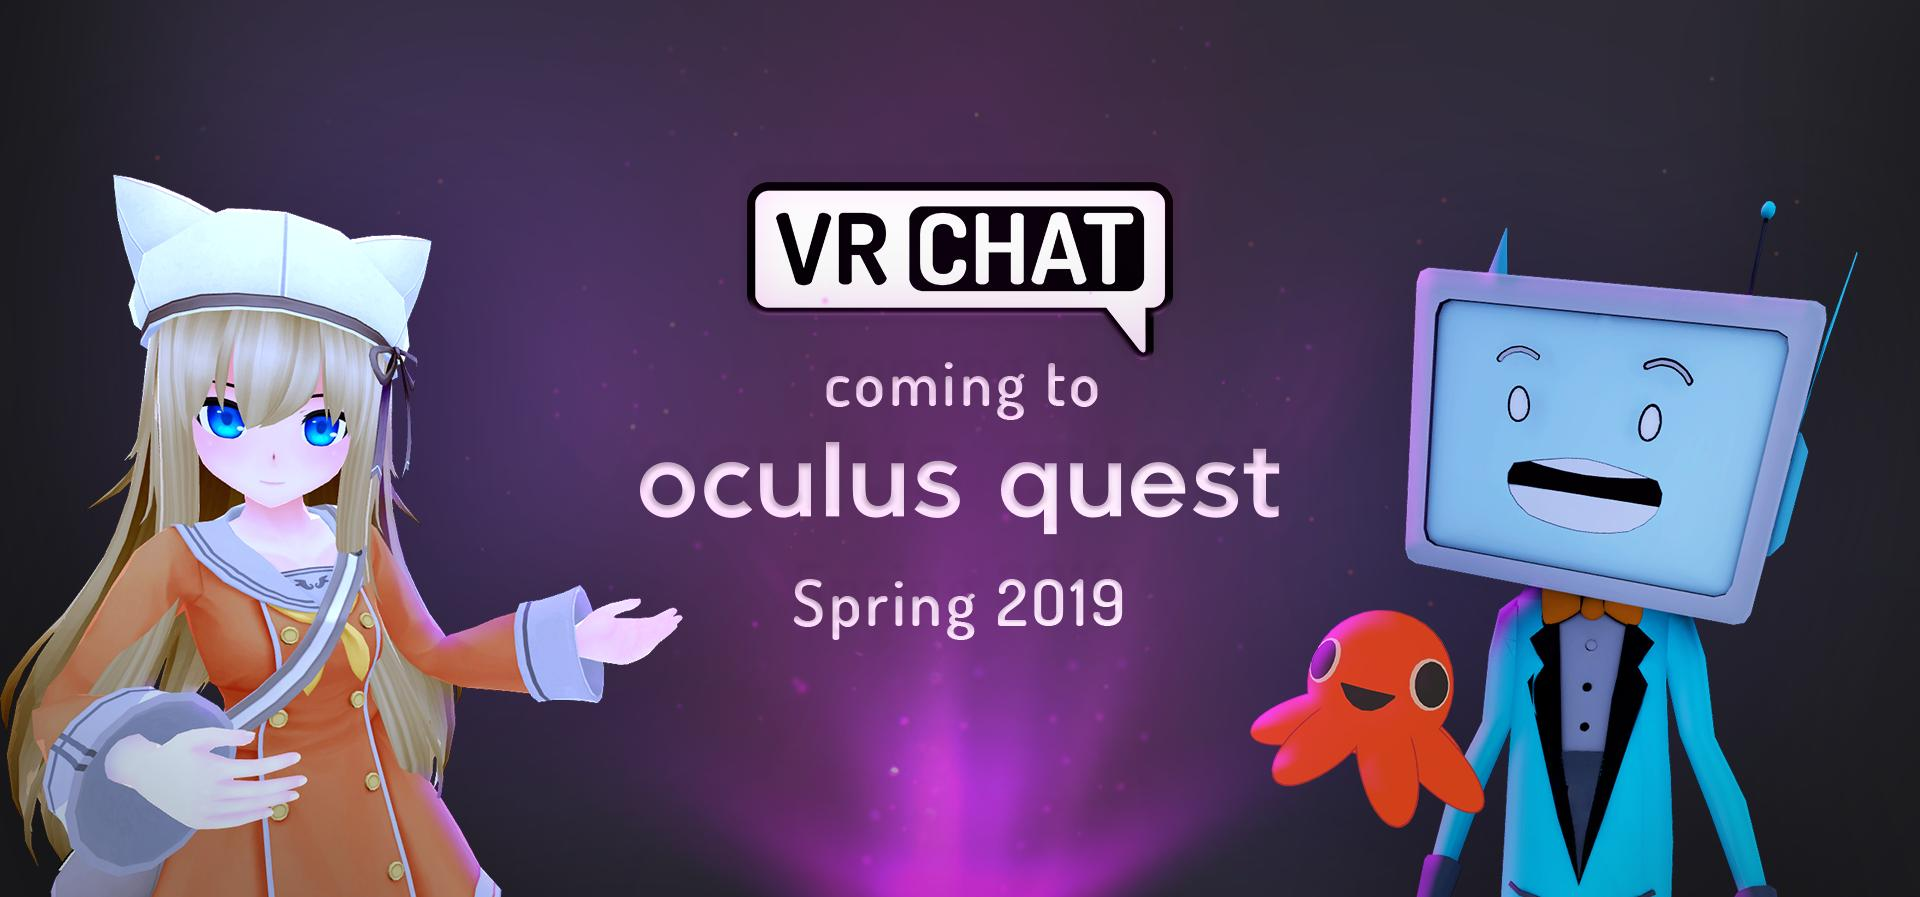 VRChat in the Oculus Quest Has Been Somewhat Buggy and Rather